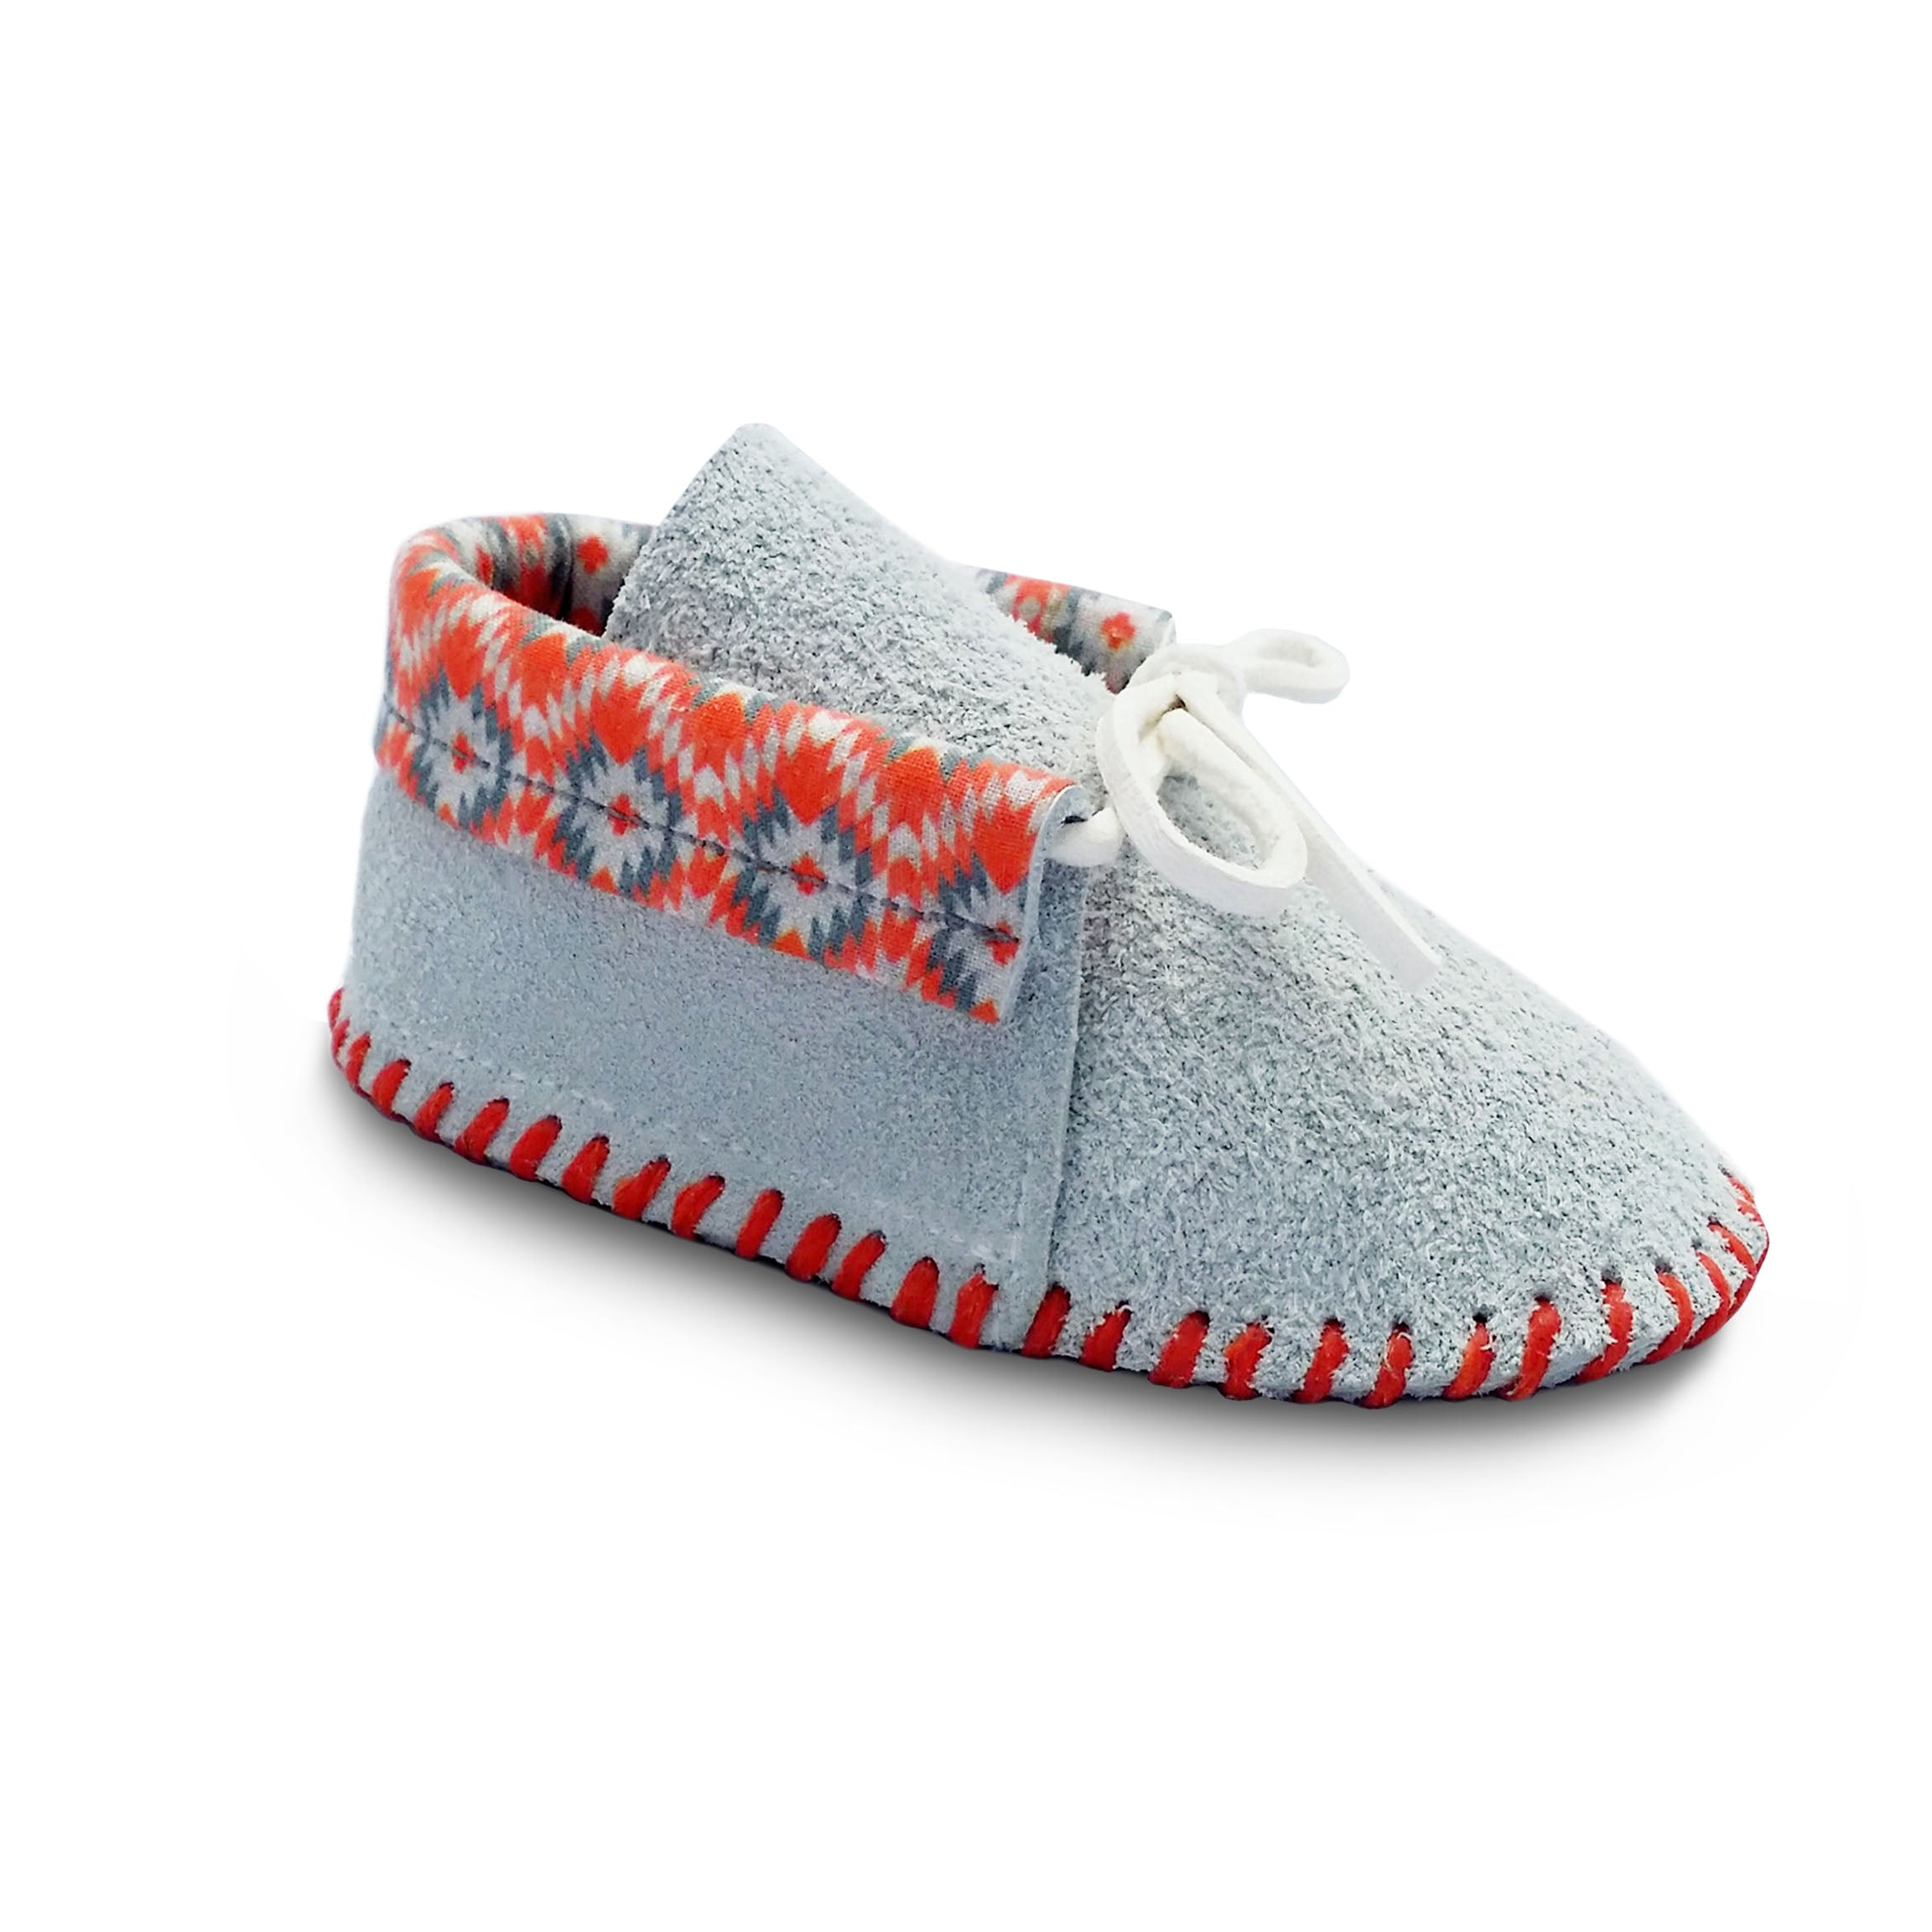 Baby moccasins by TPMOCS in the design of setting suns.